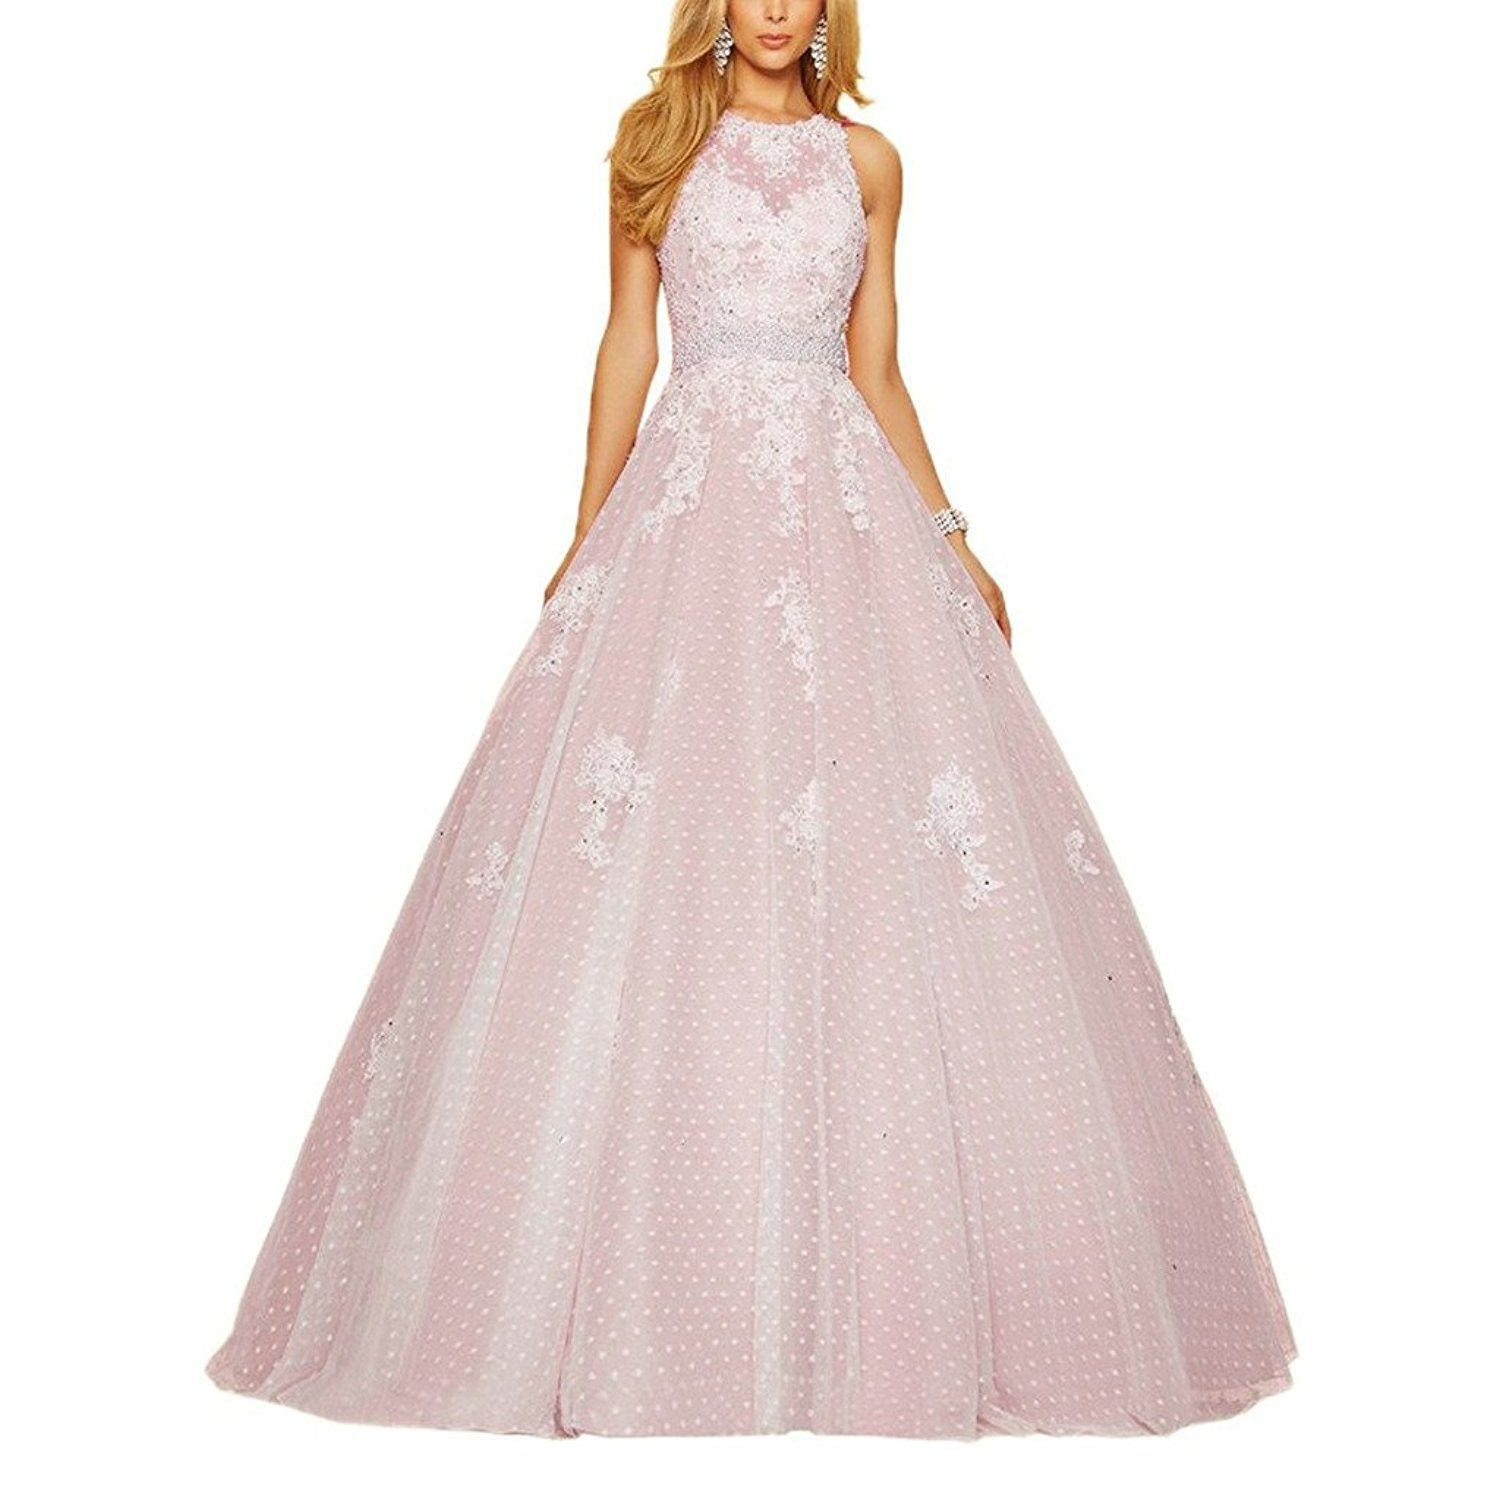 Womenus halter ball gown quinceanera dresses with lace appliques